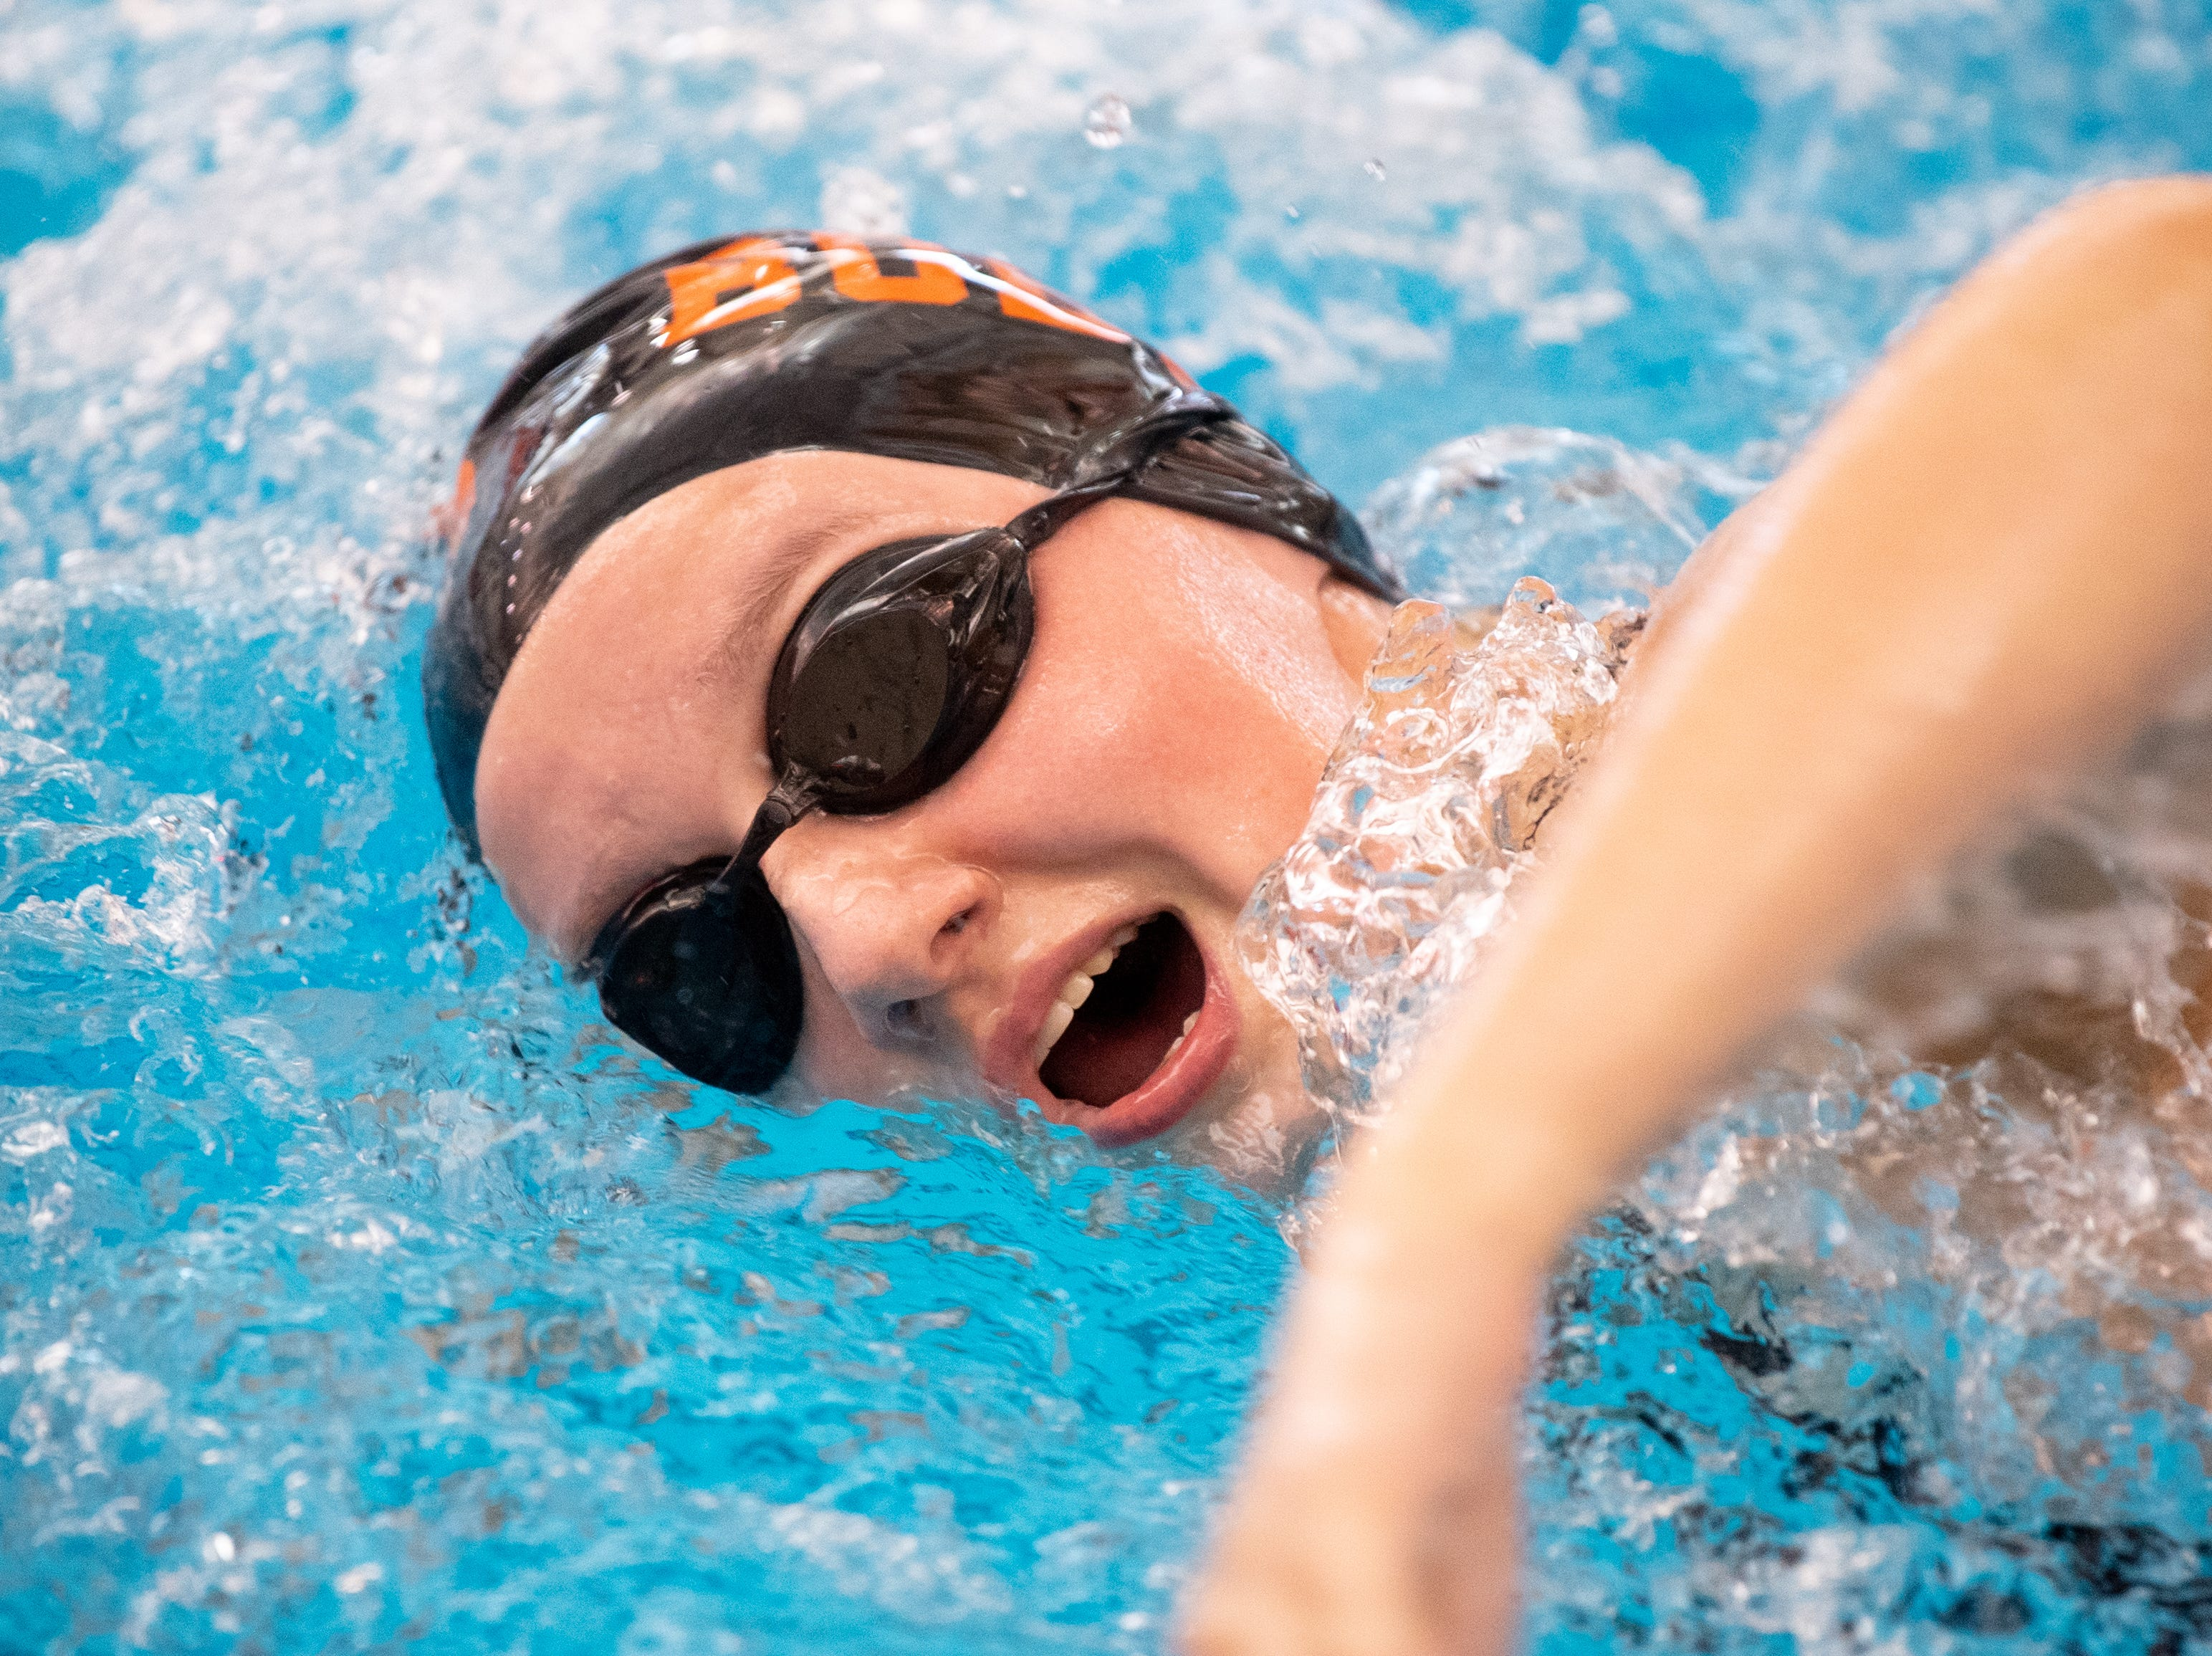 Katie Mummert of Northeastern swims in the Girls 550 Yard Freestyle during the 2019 YAIAA Swimming and Diving Championships at Central York High School, February 9, 2019.